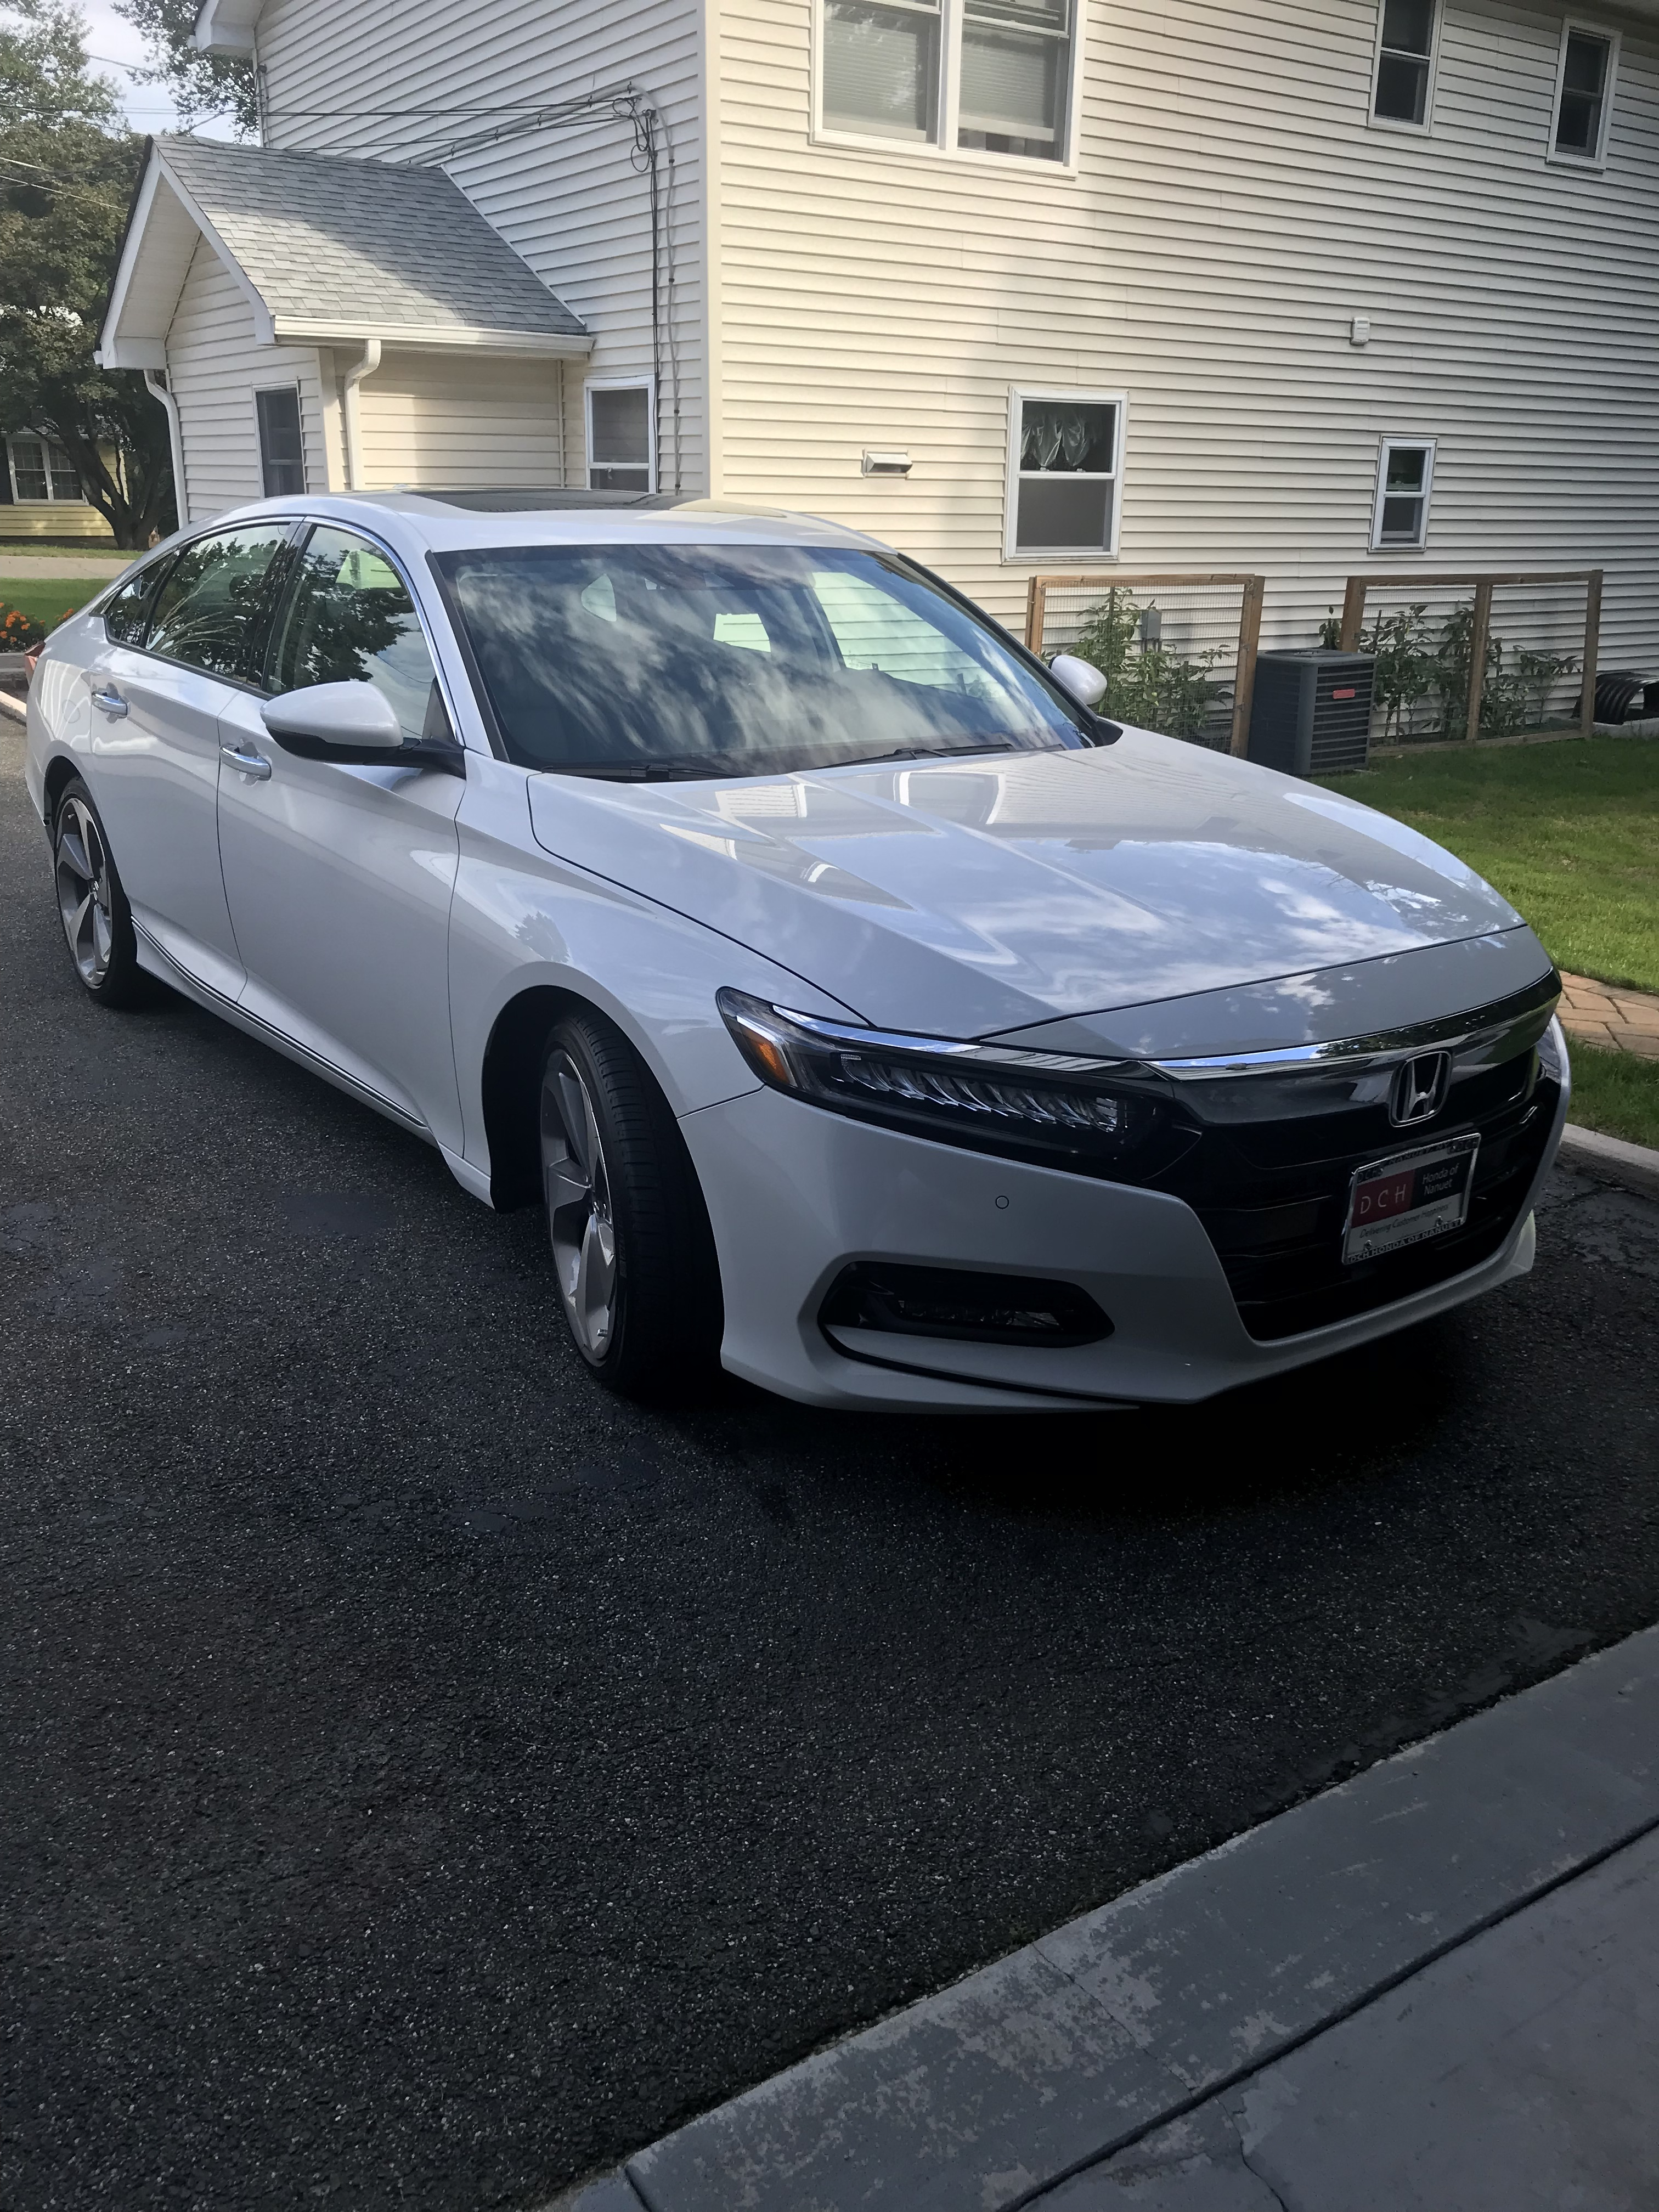 18 Accord Touring 1 5 - 259/mo, 995 drive off - thoughts